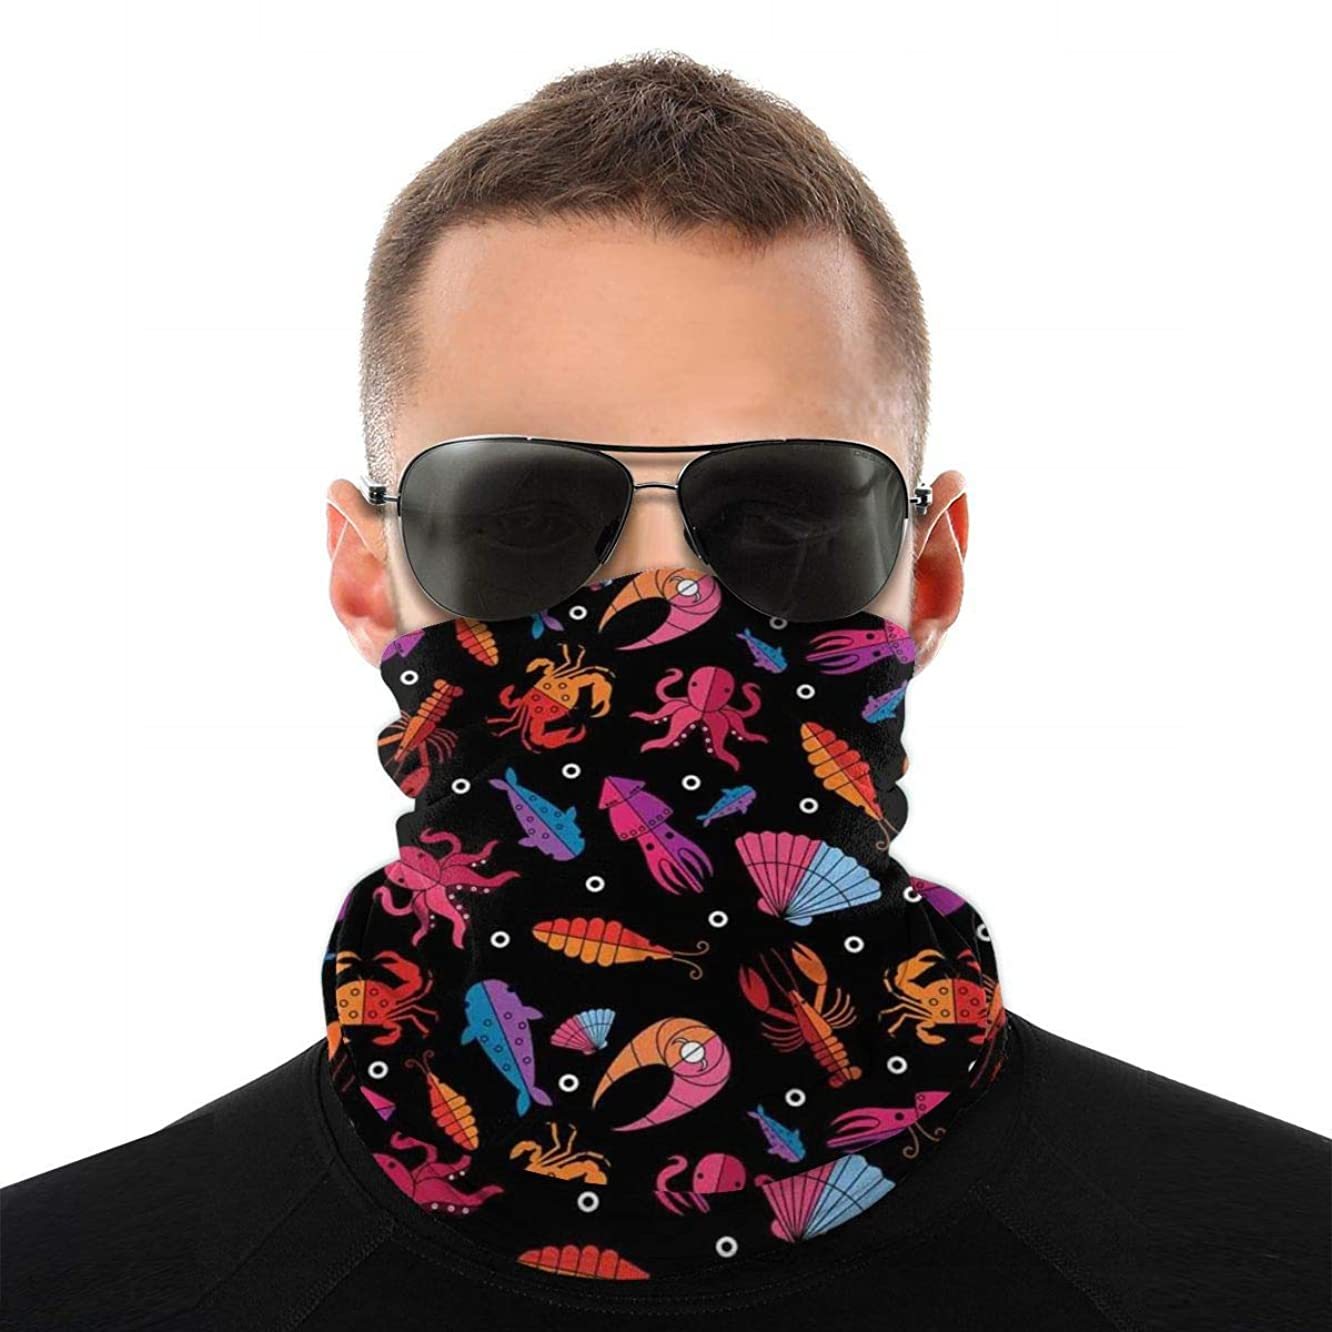 鉱夫テザー今Multifunctional Bandana Face Cover 多機能バンダナフェイスカバー,Seafood Delicacy Theme Modern Design Ocean Wildlife Creatures Compositio...